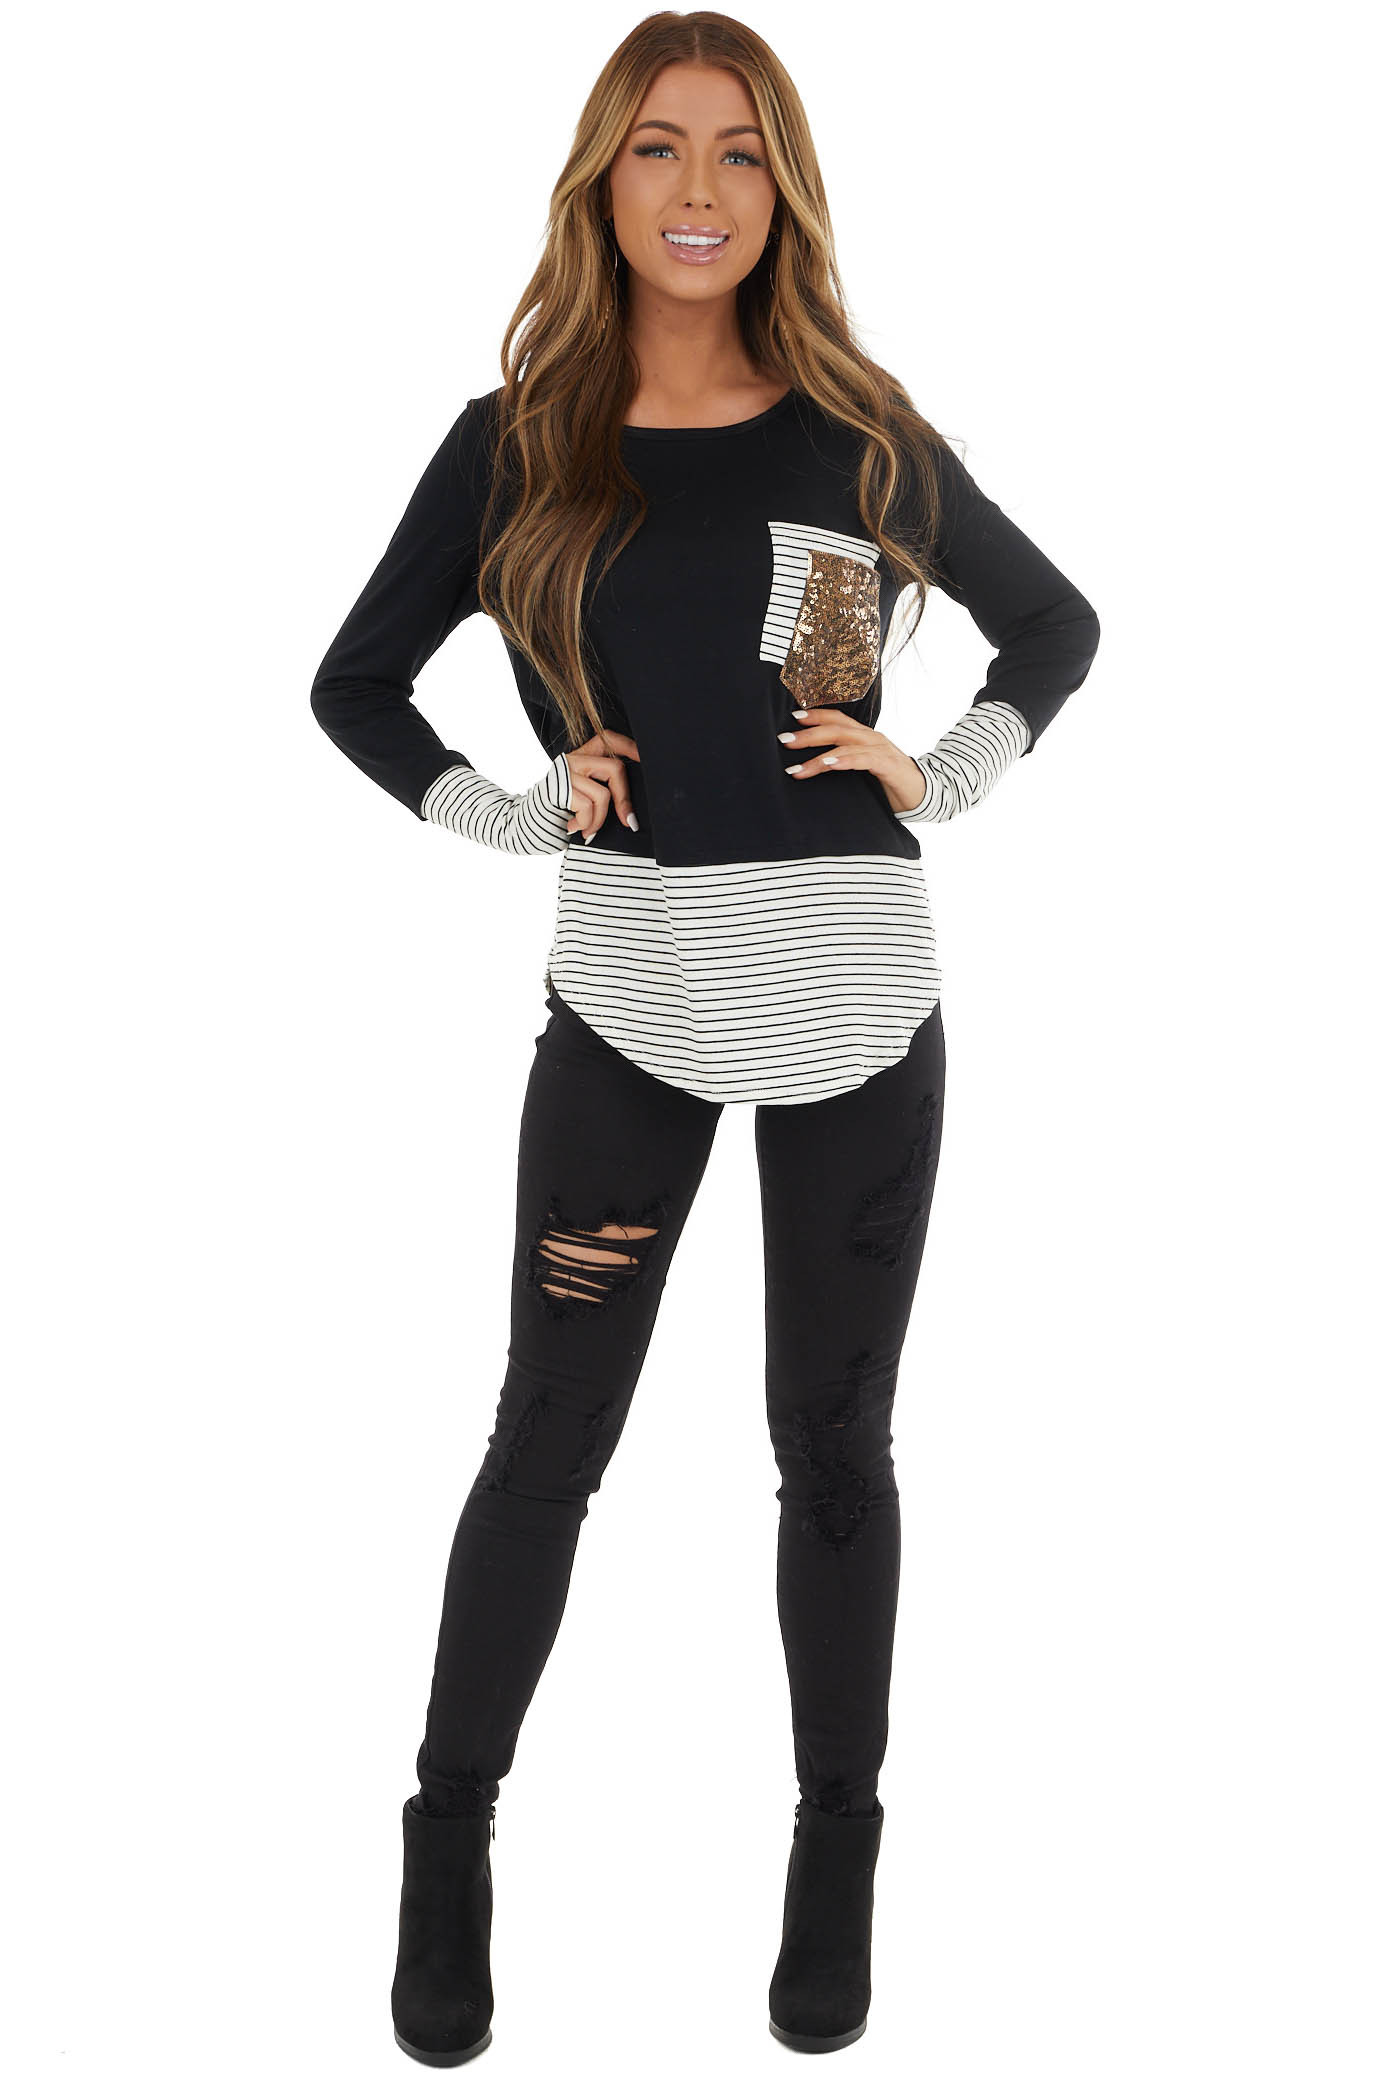 Black Long Sleeve Top with Striped Contrasts and Pockets